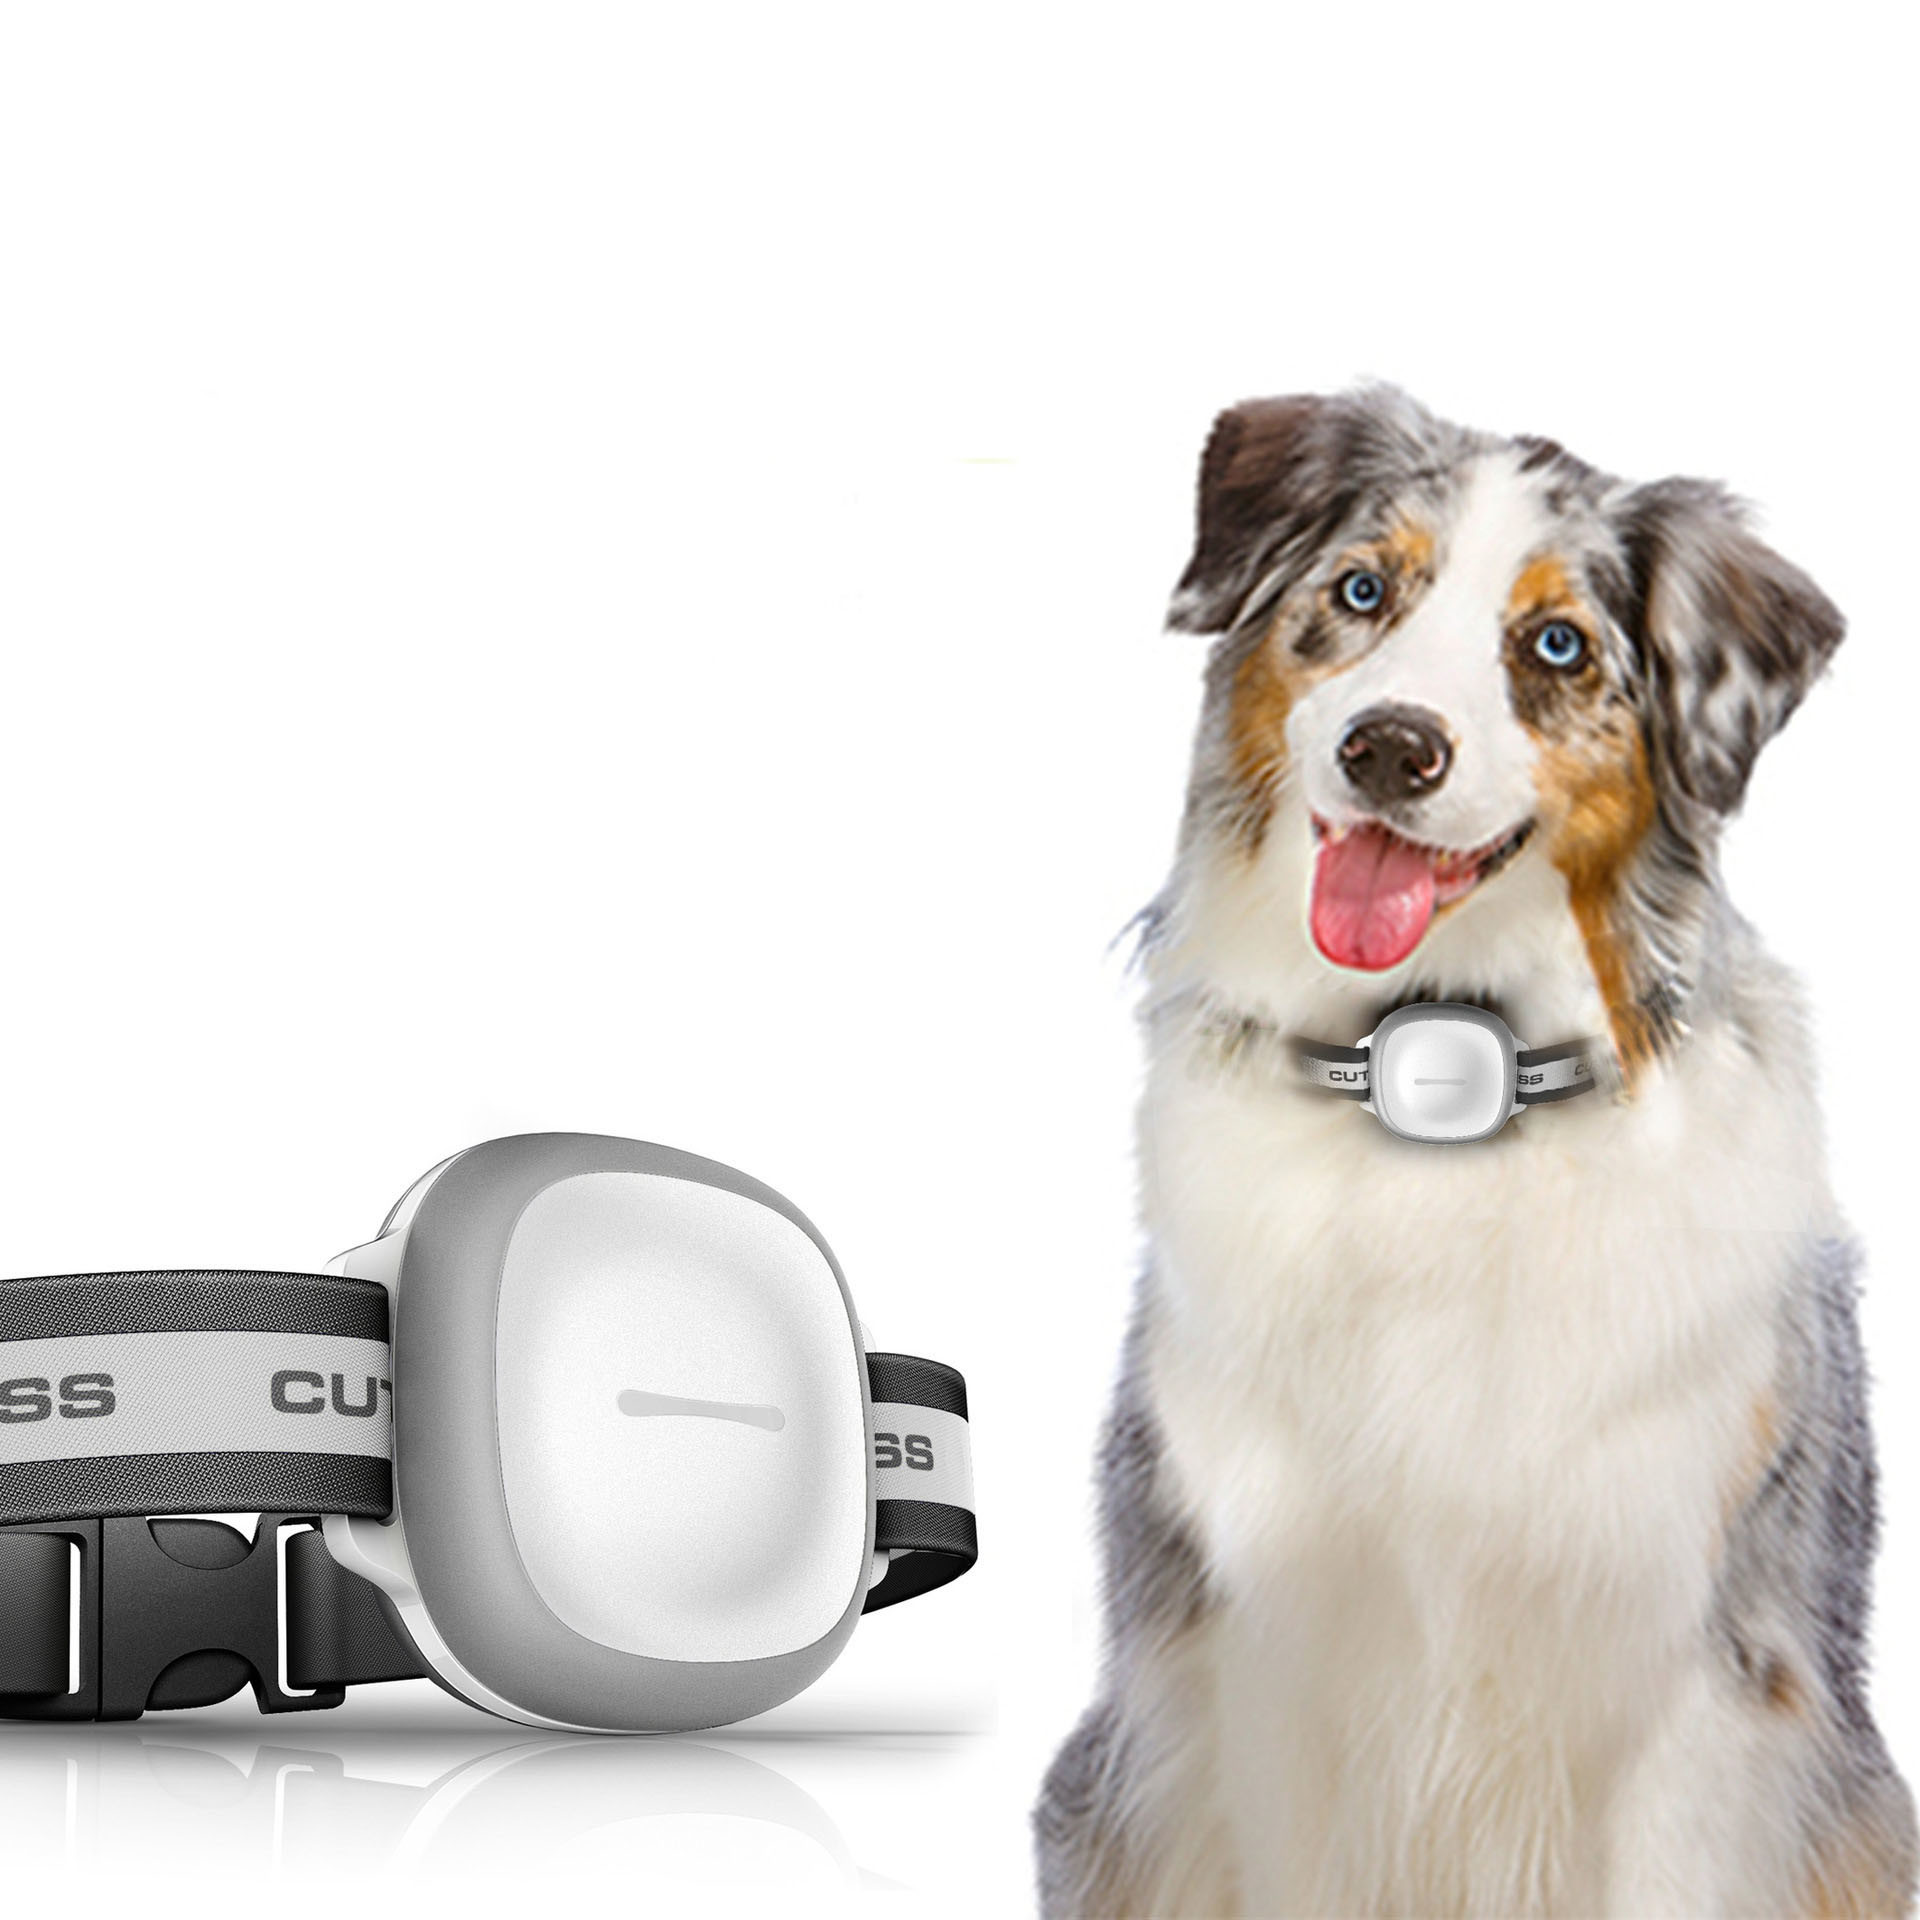 Pet Intelligent GPS Locator Dogs and Cats Anti Lost Device to Find Dogs